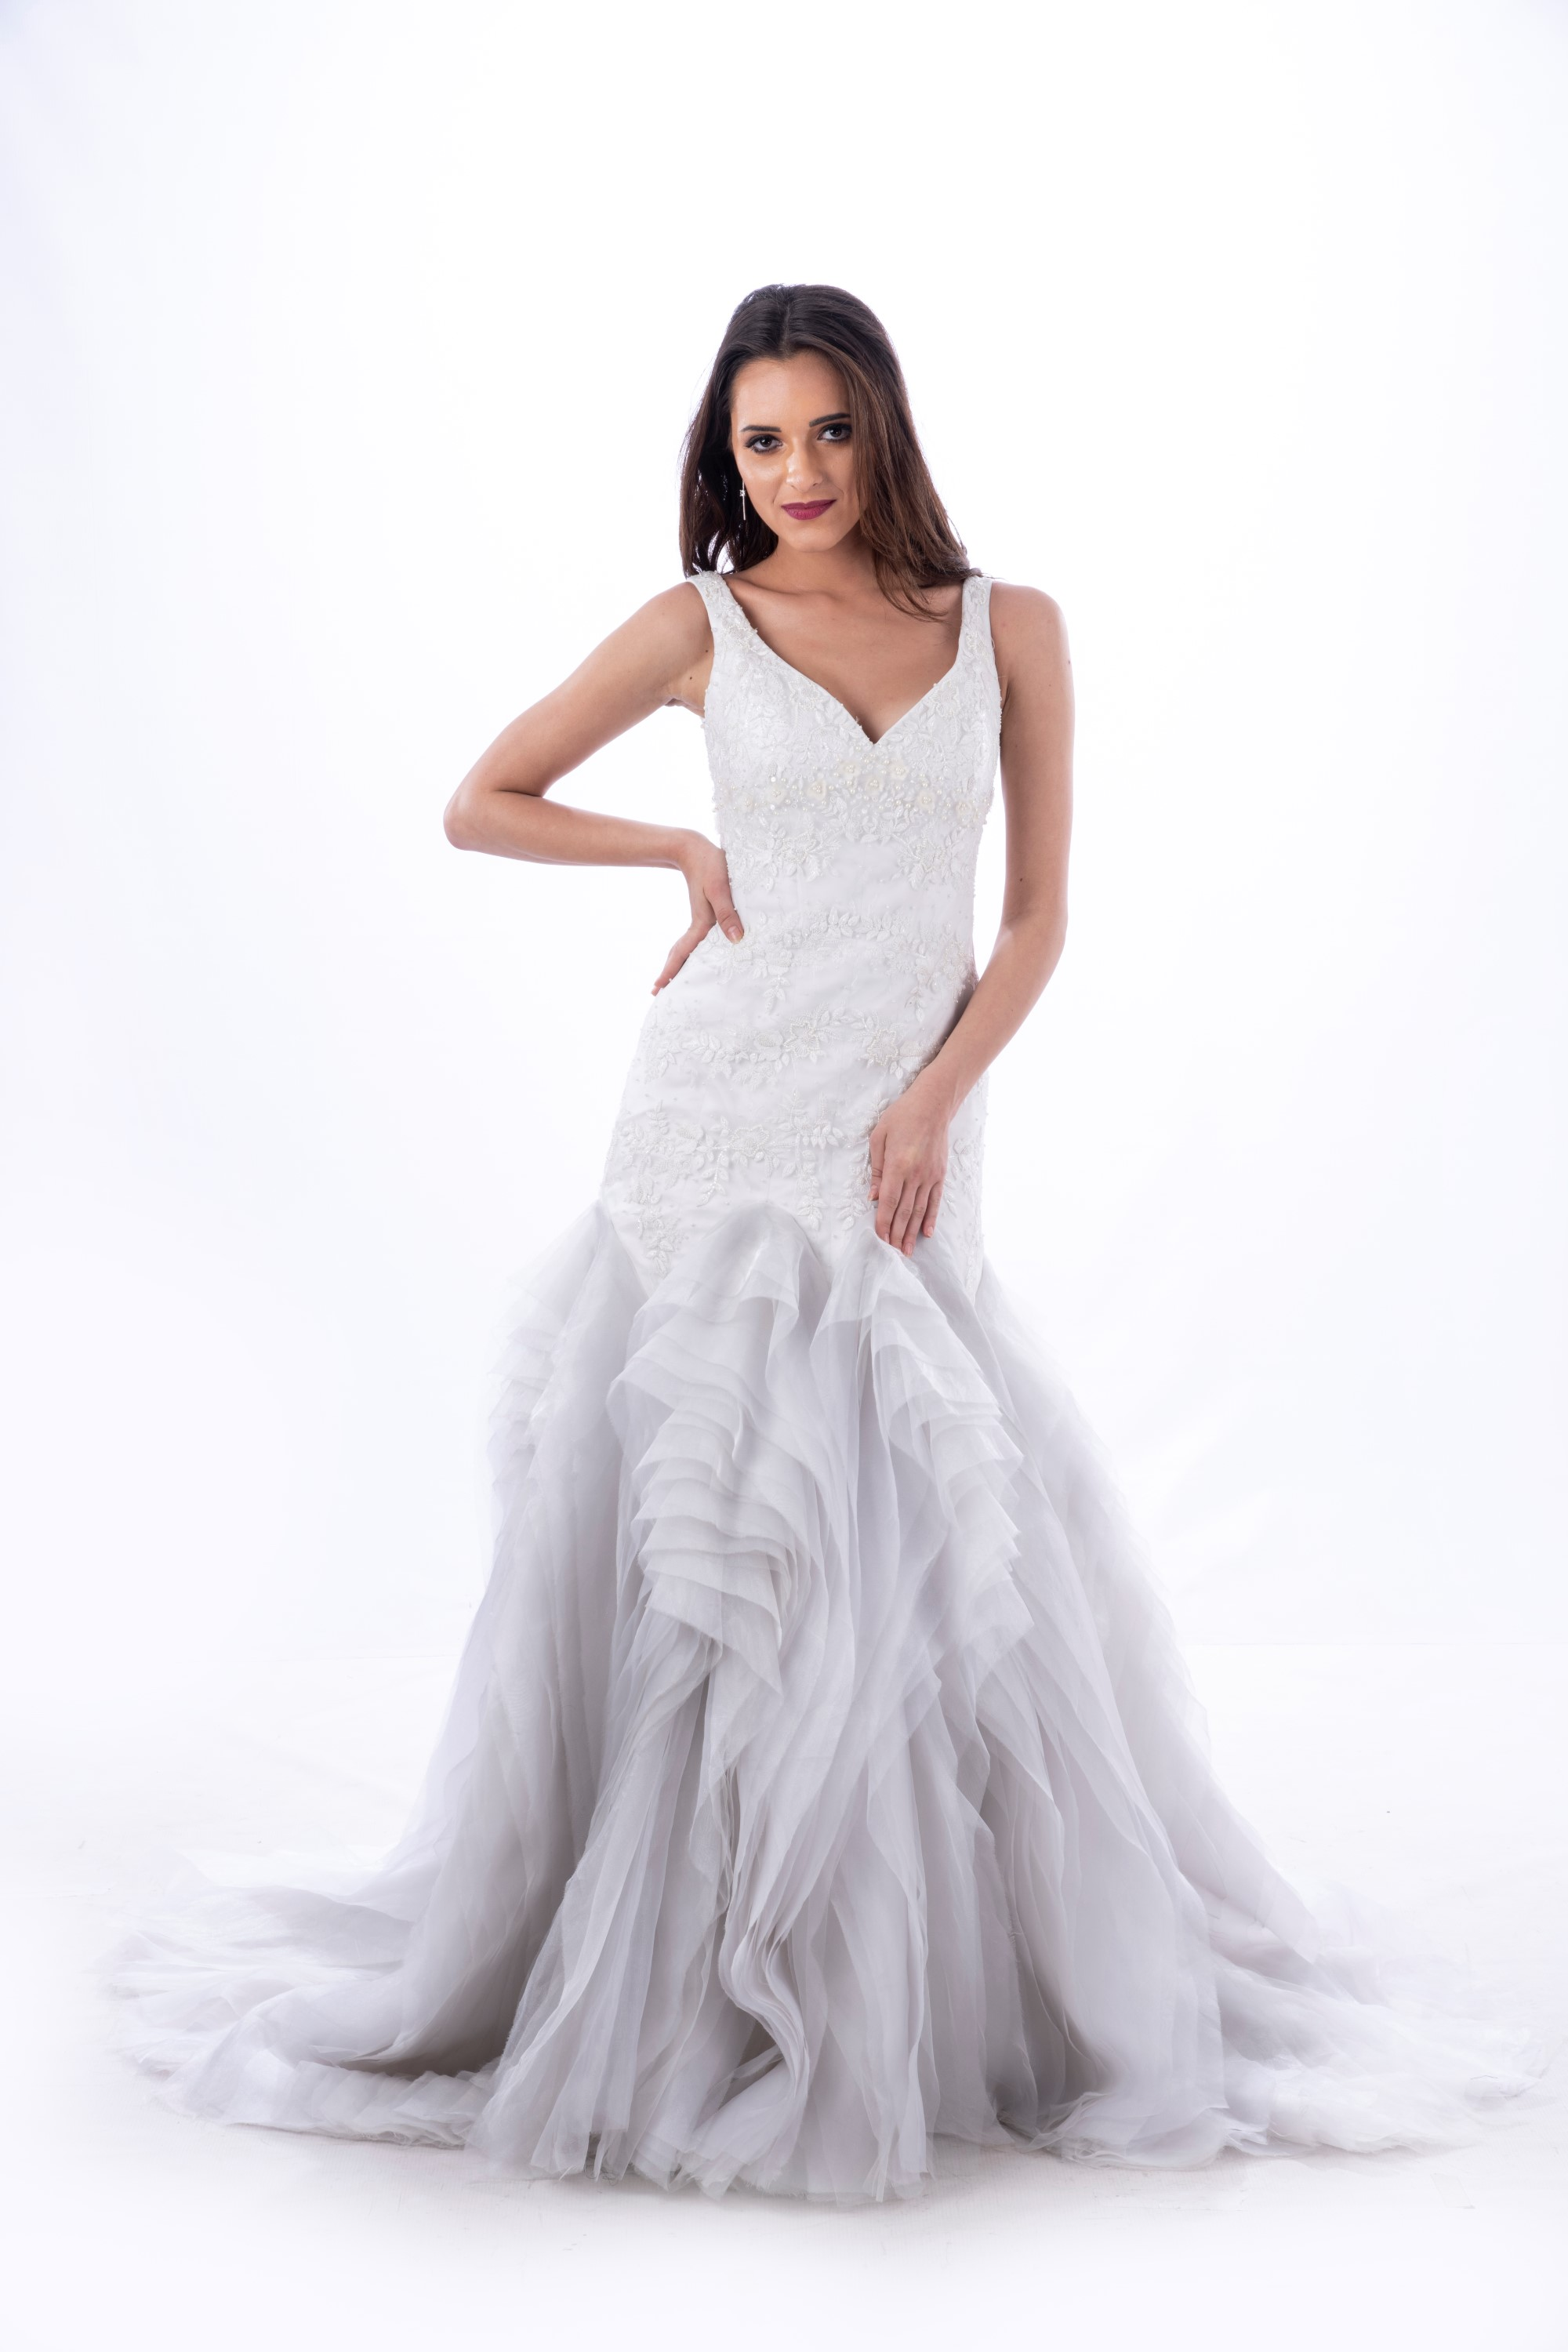 HOW TO Continue To Keep THE WEDDING GOWN SO THAT IT LASTS A LIFETIME ??